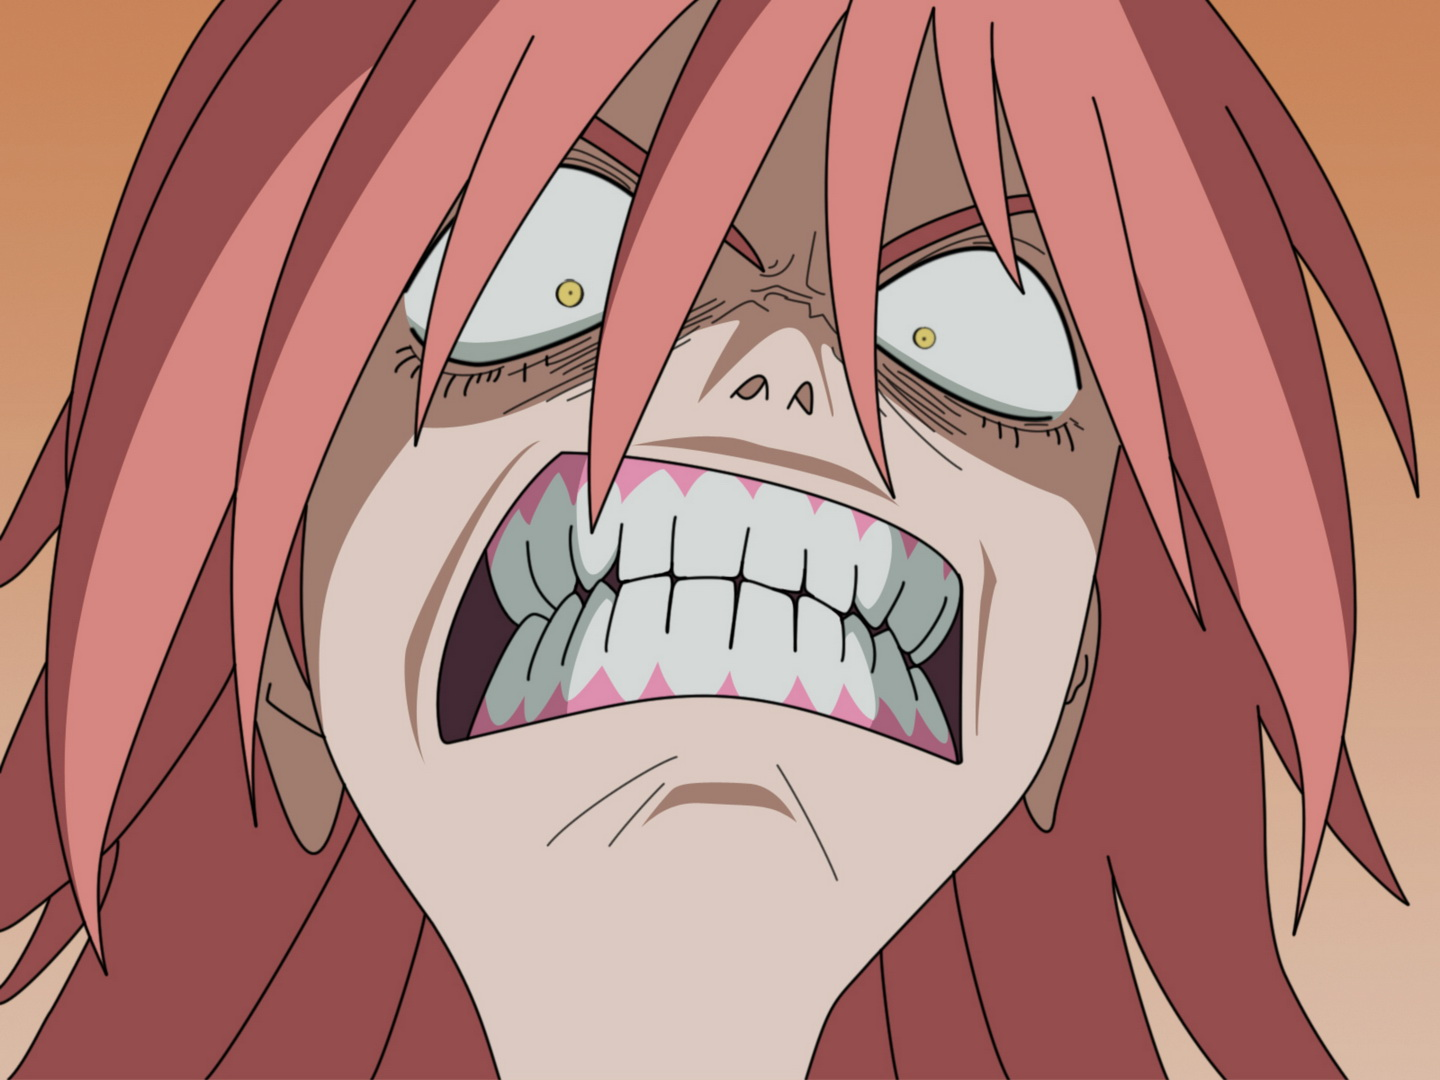 Funny-Face-When-Angry-Anime-Japan-03